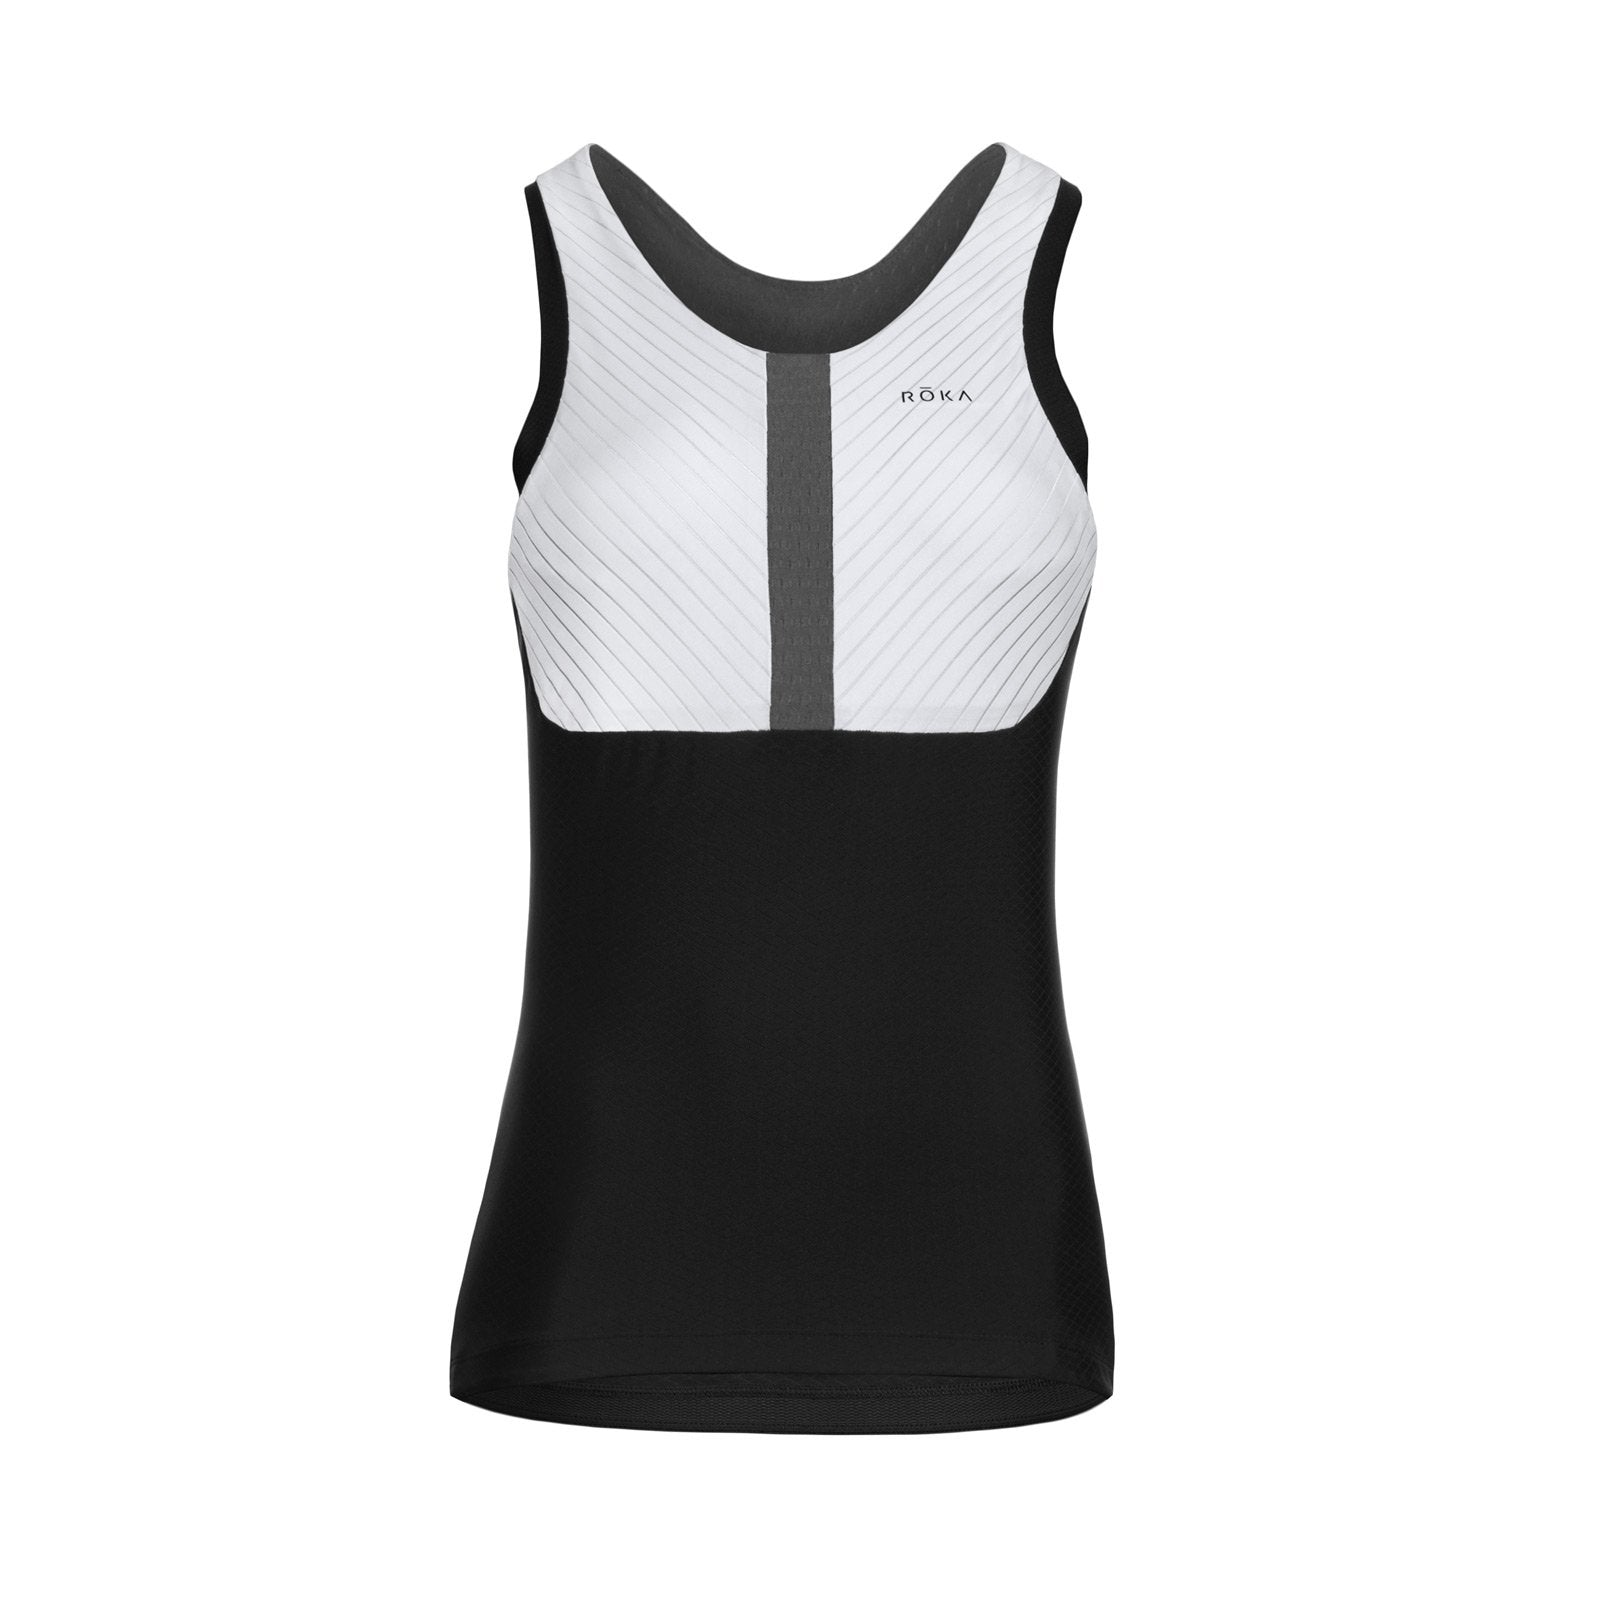 Women's Gen II Elite Aero Sleeveless Tri Top - White Triathlon Top